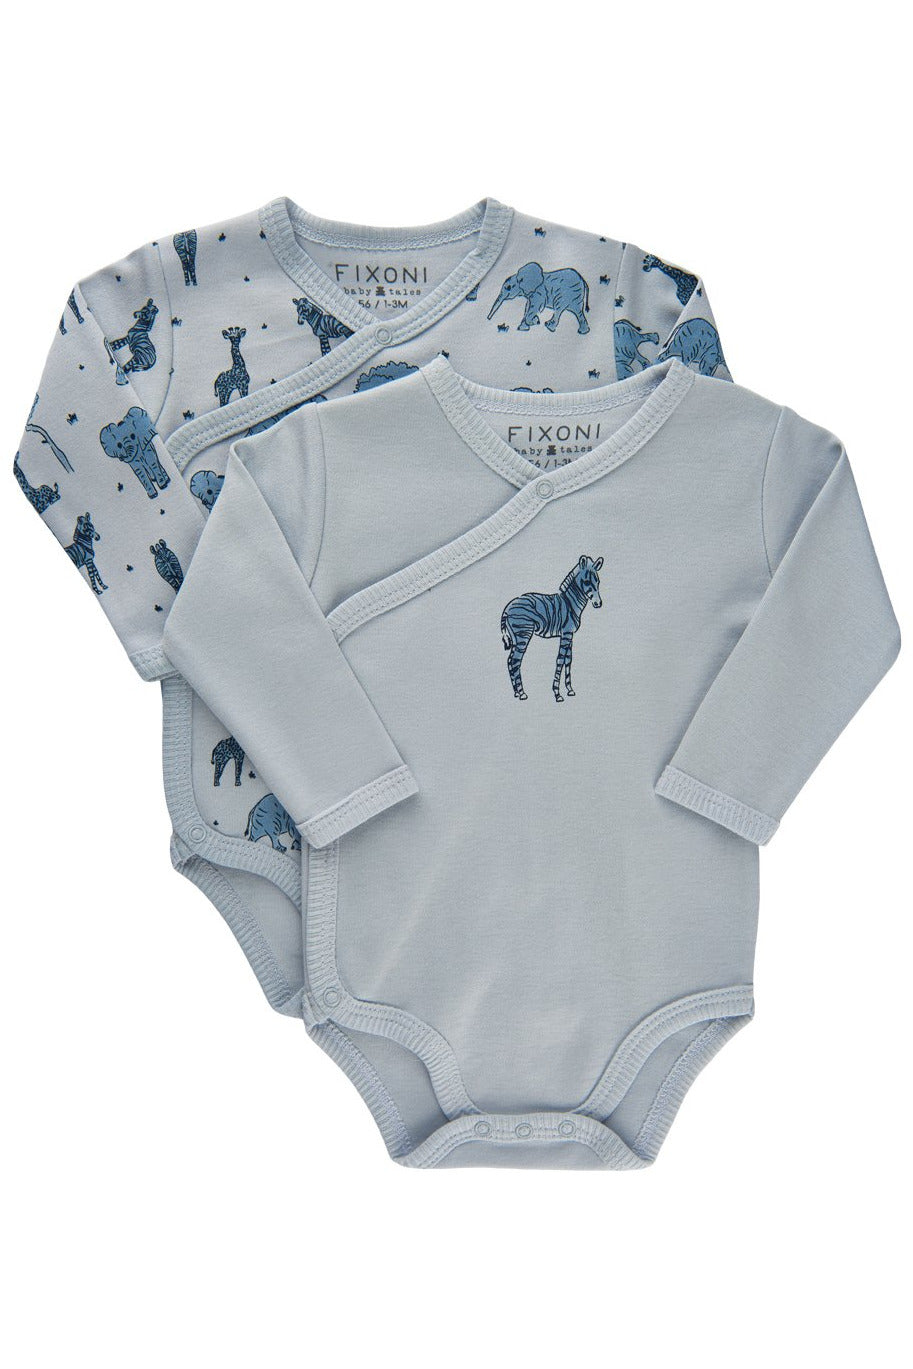 Fixoni Baby Long Sleeve Bodysuits Set of 2    34207    Baby Blue